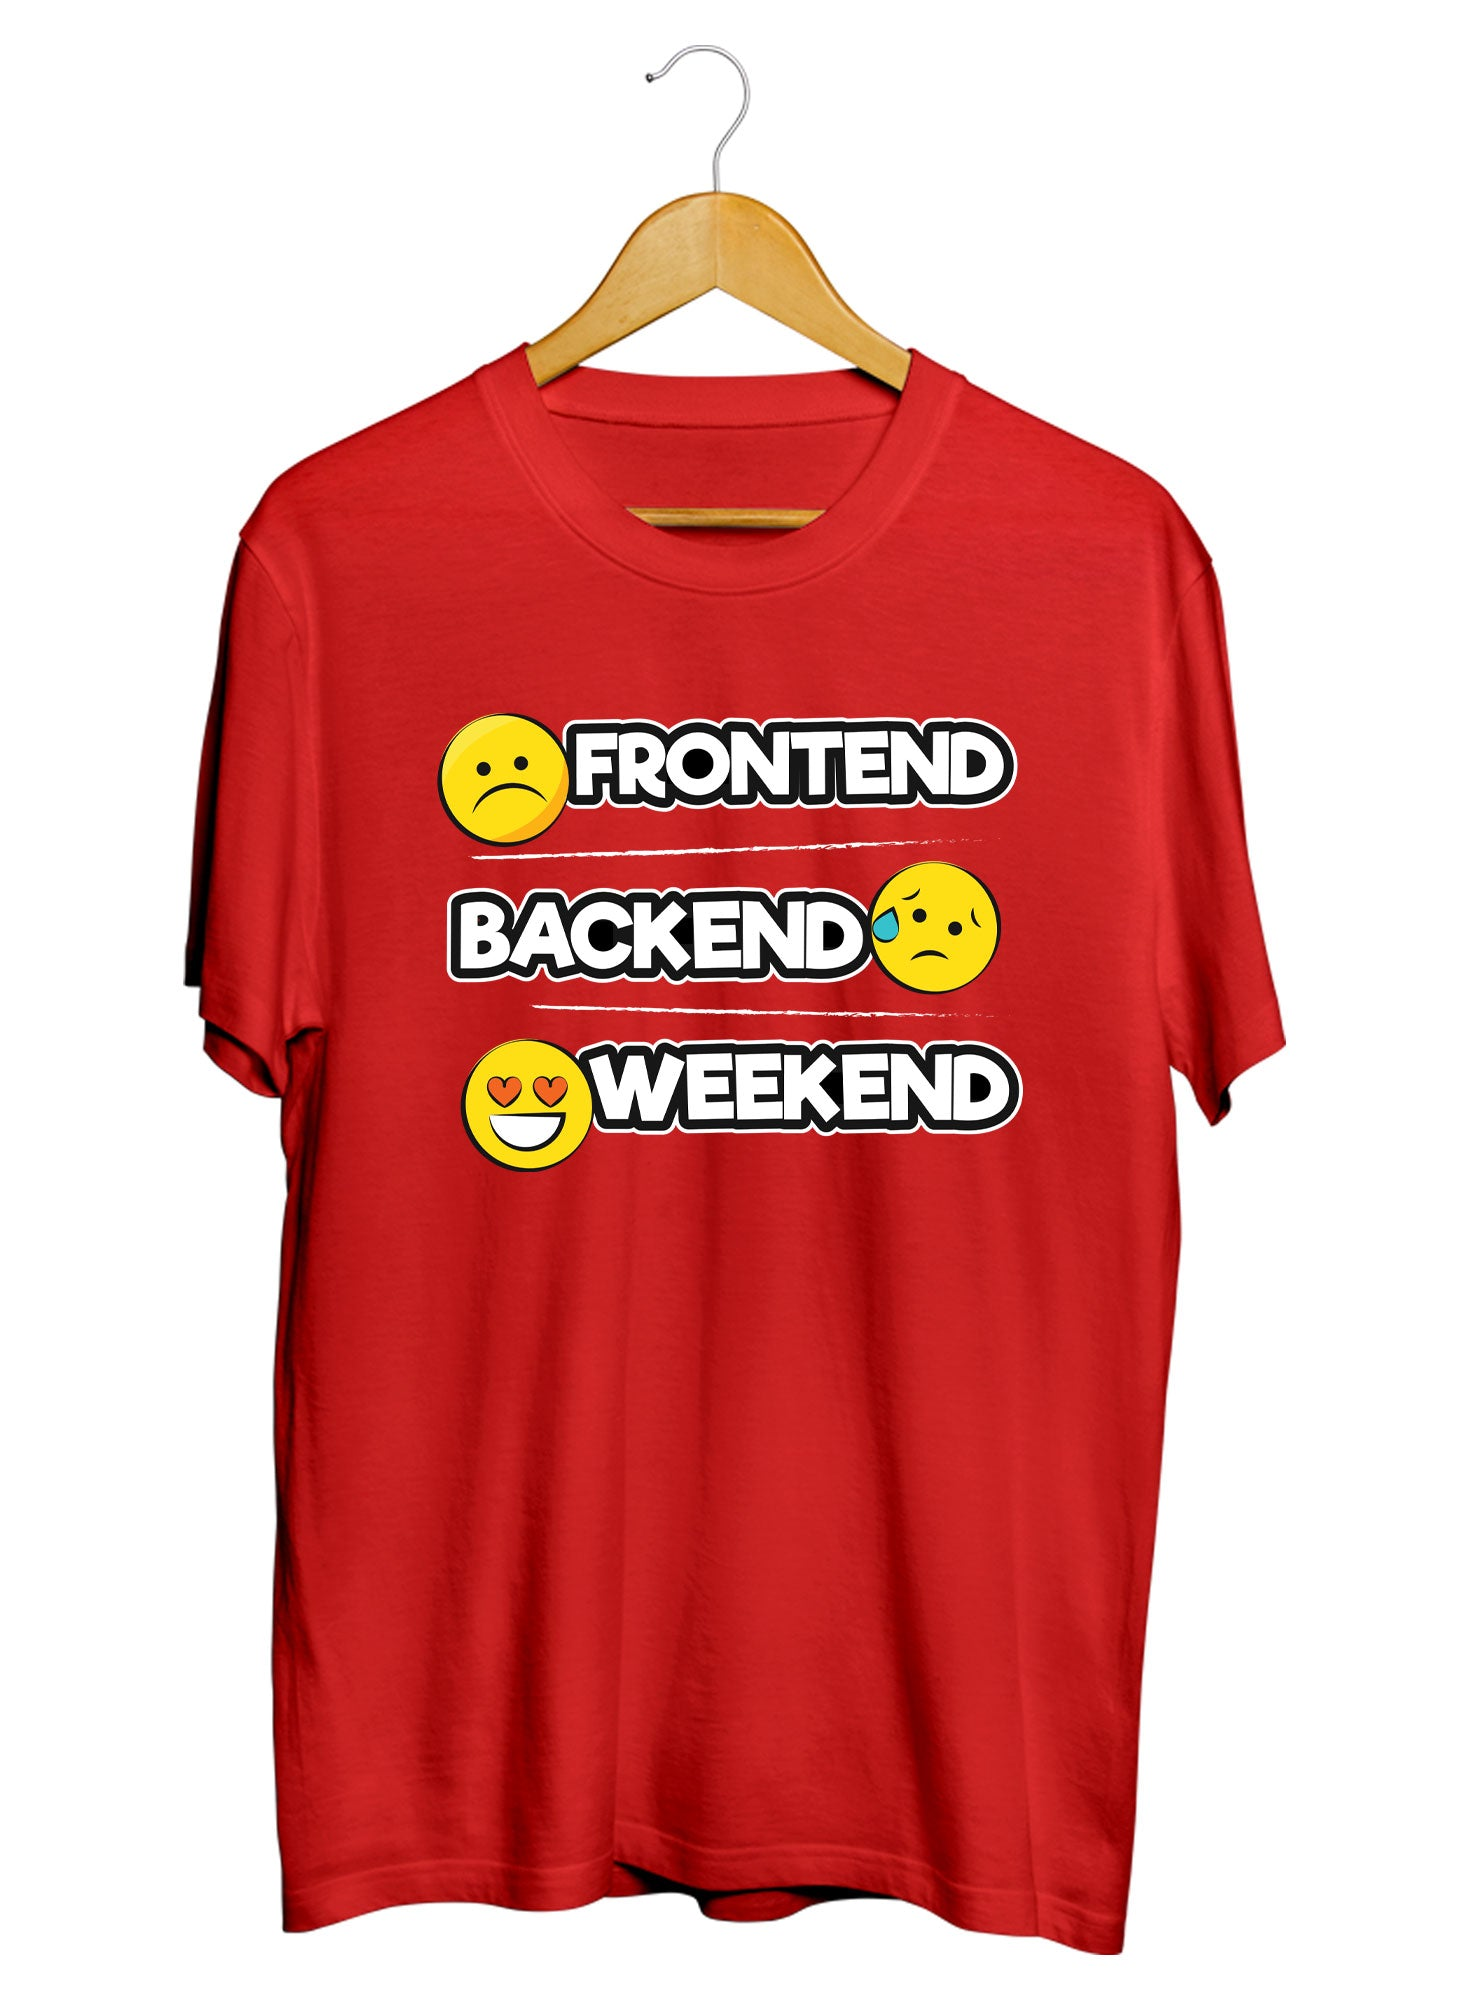 Weekend T-shirt - TrendTones